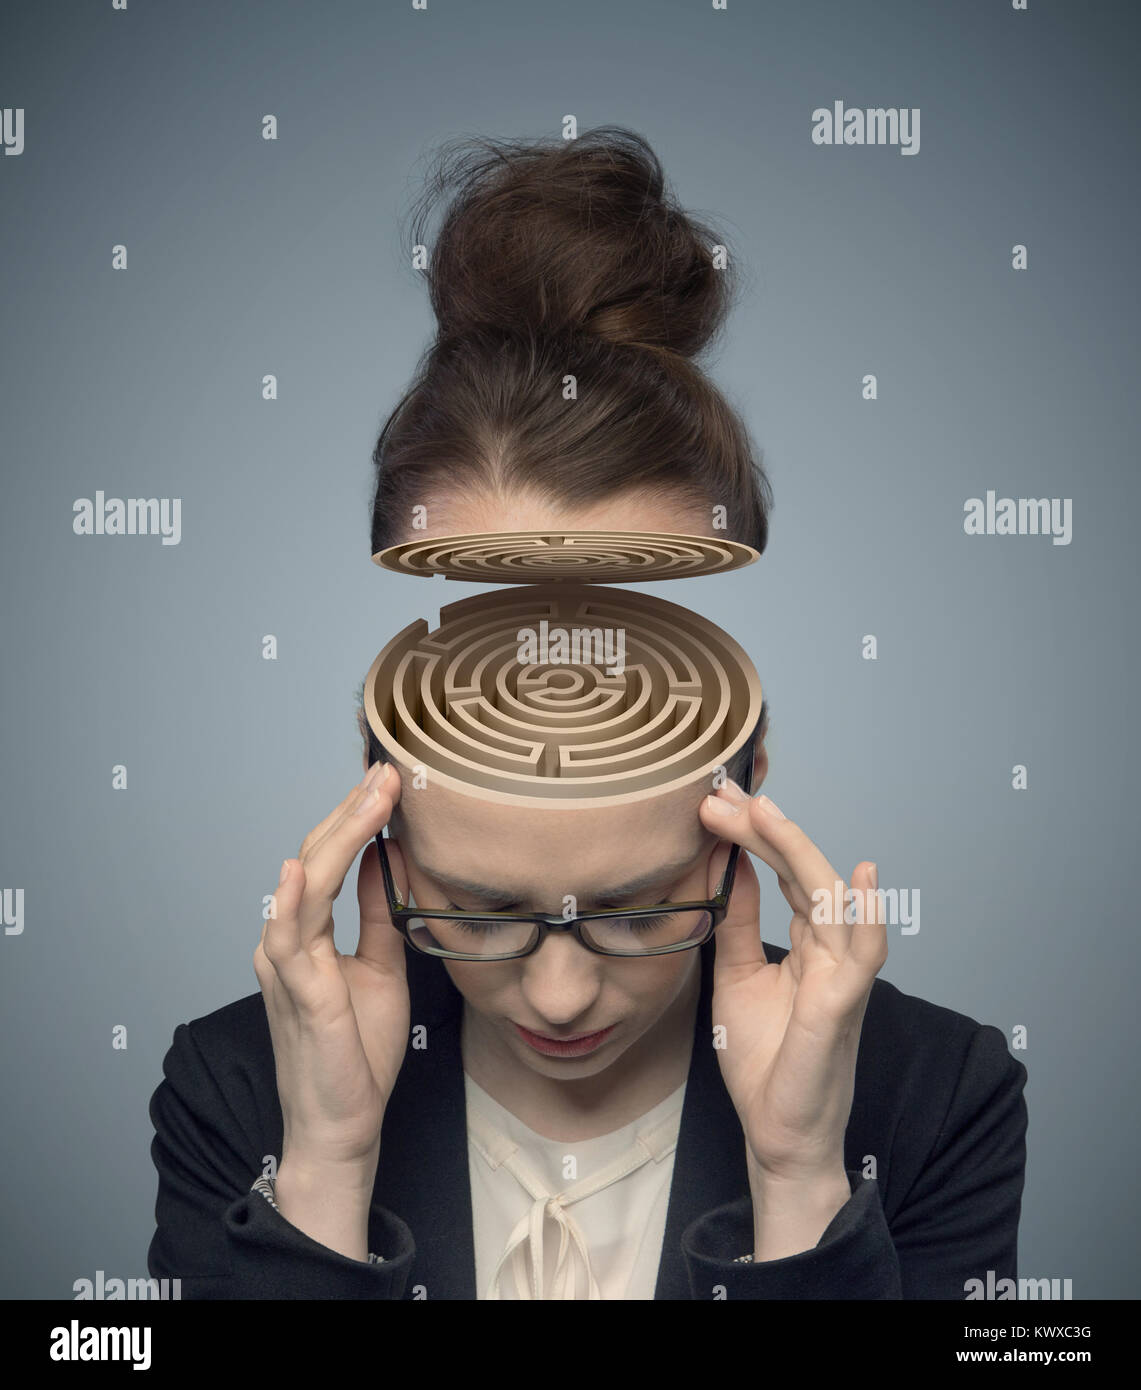 Conceptual image of a labyrinth in the woman's brain - Stock Image